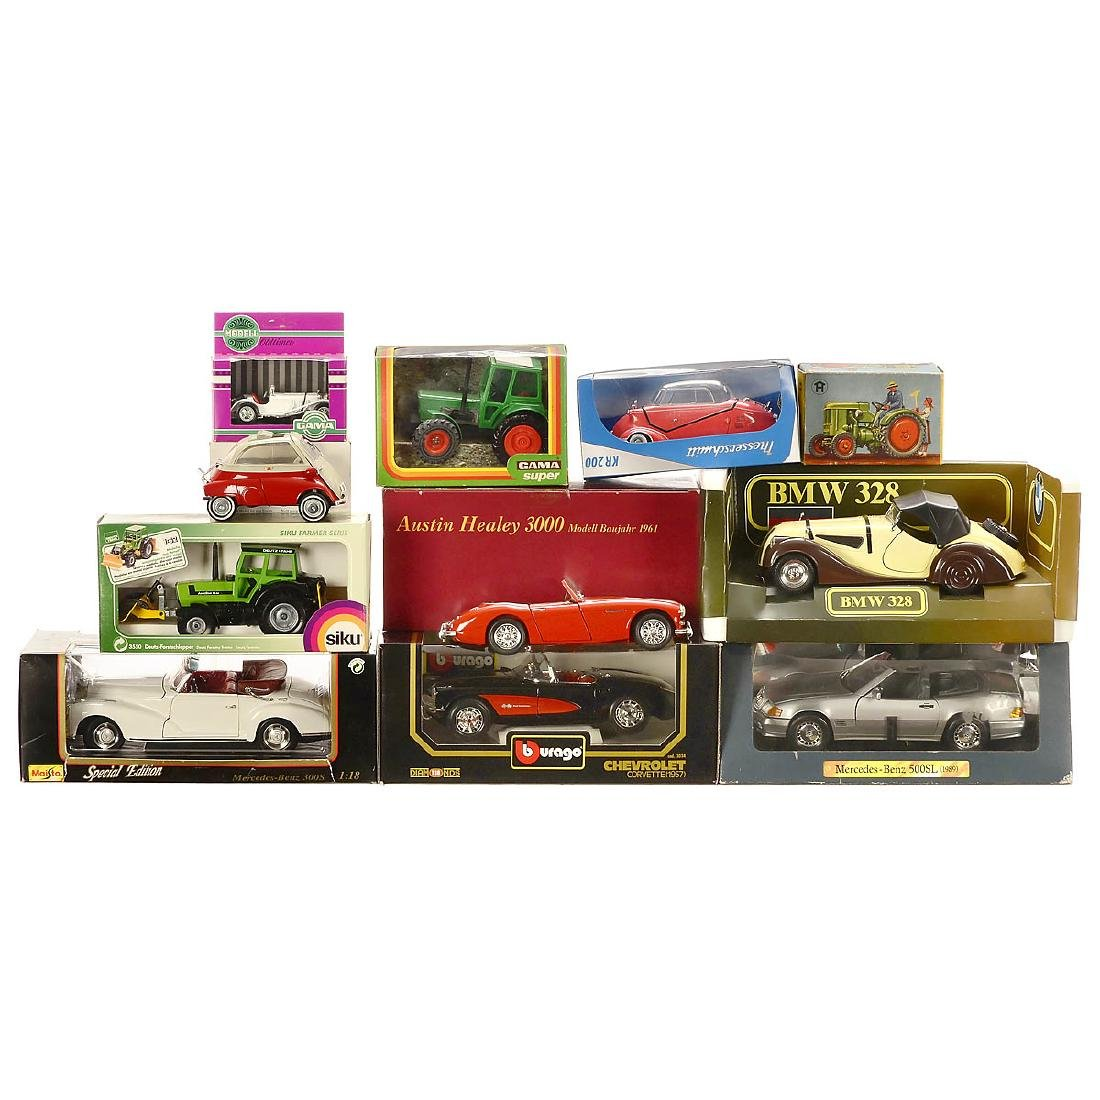 Group of Scale1:18 Model Cars - 3